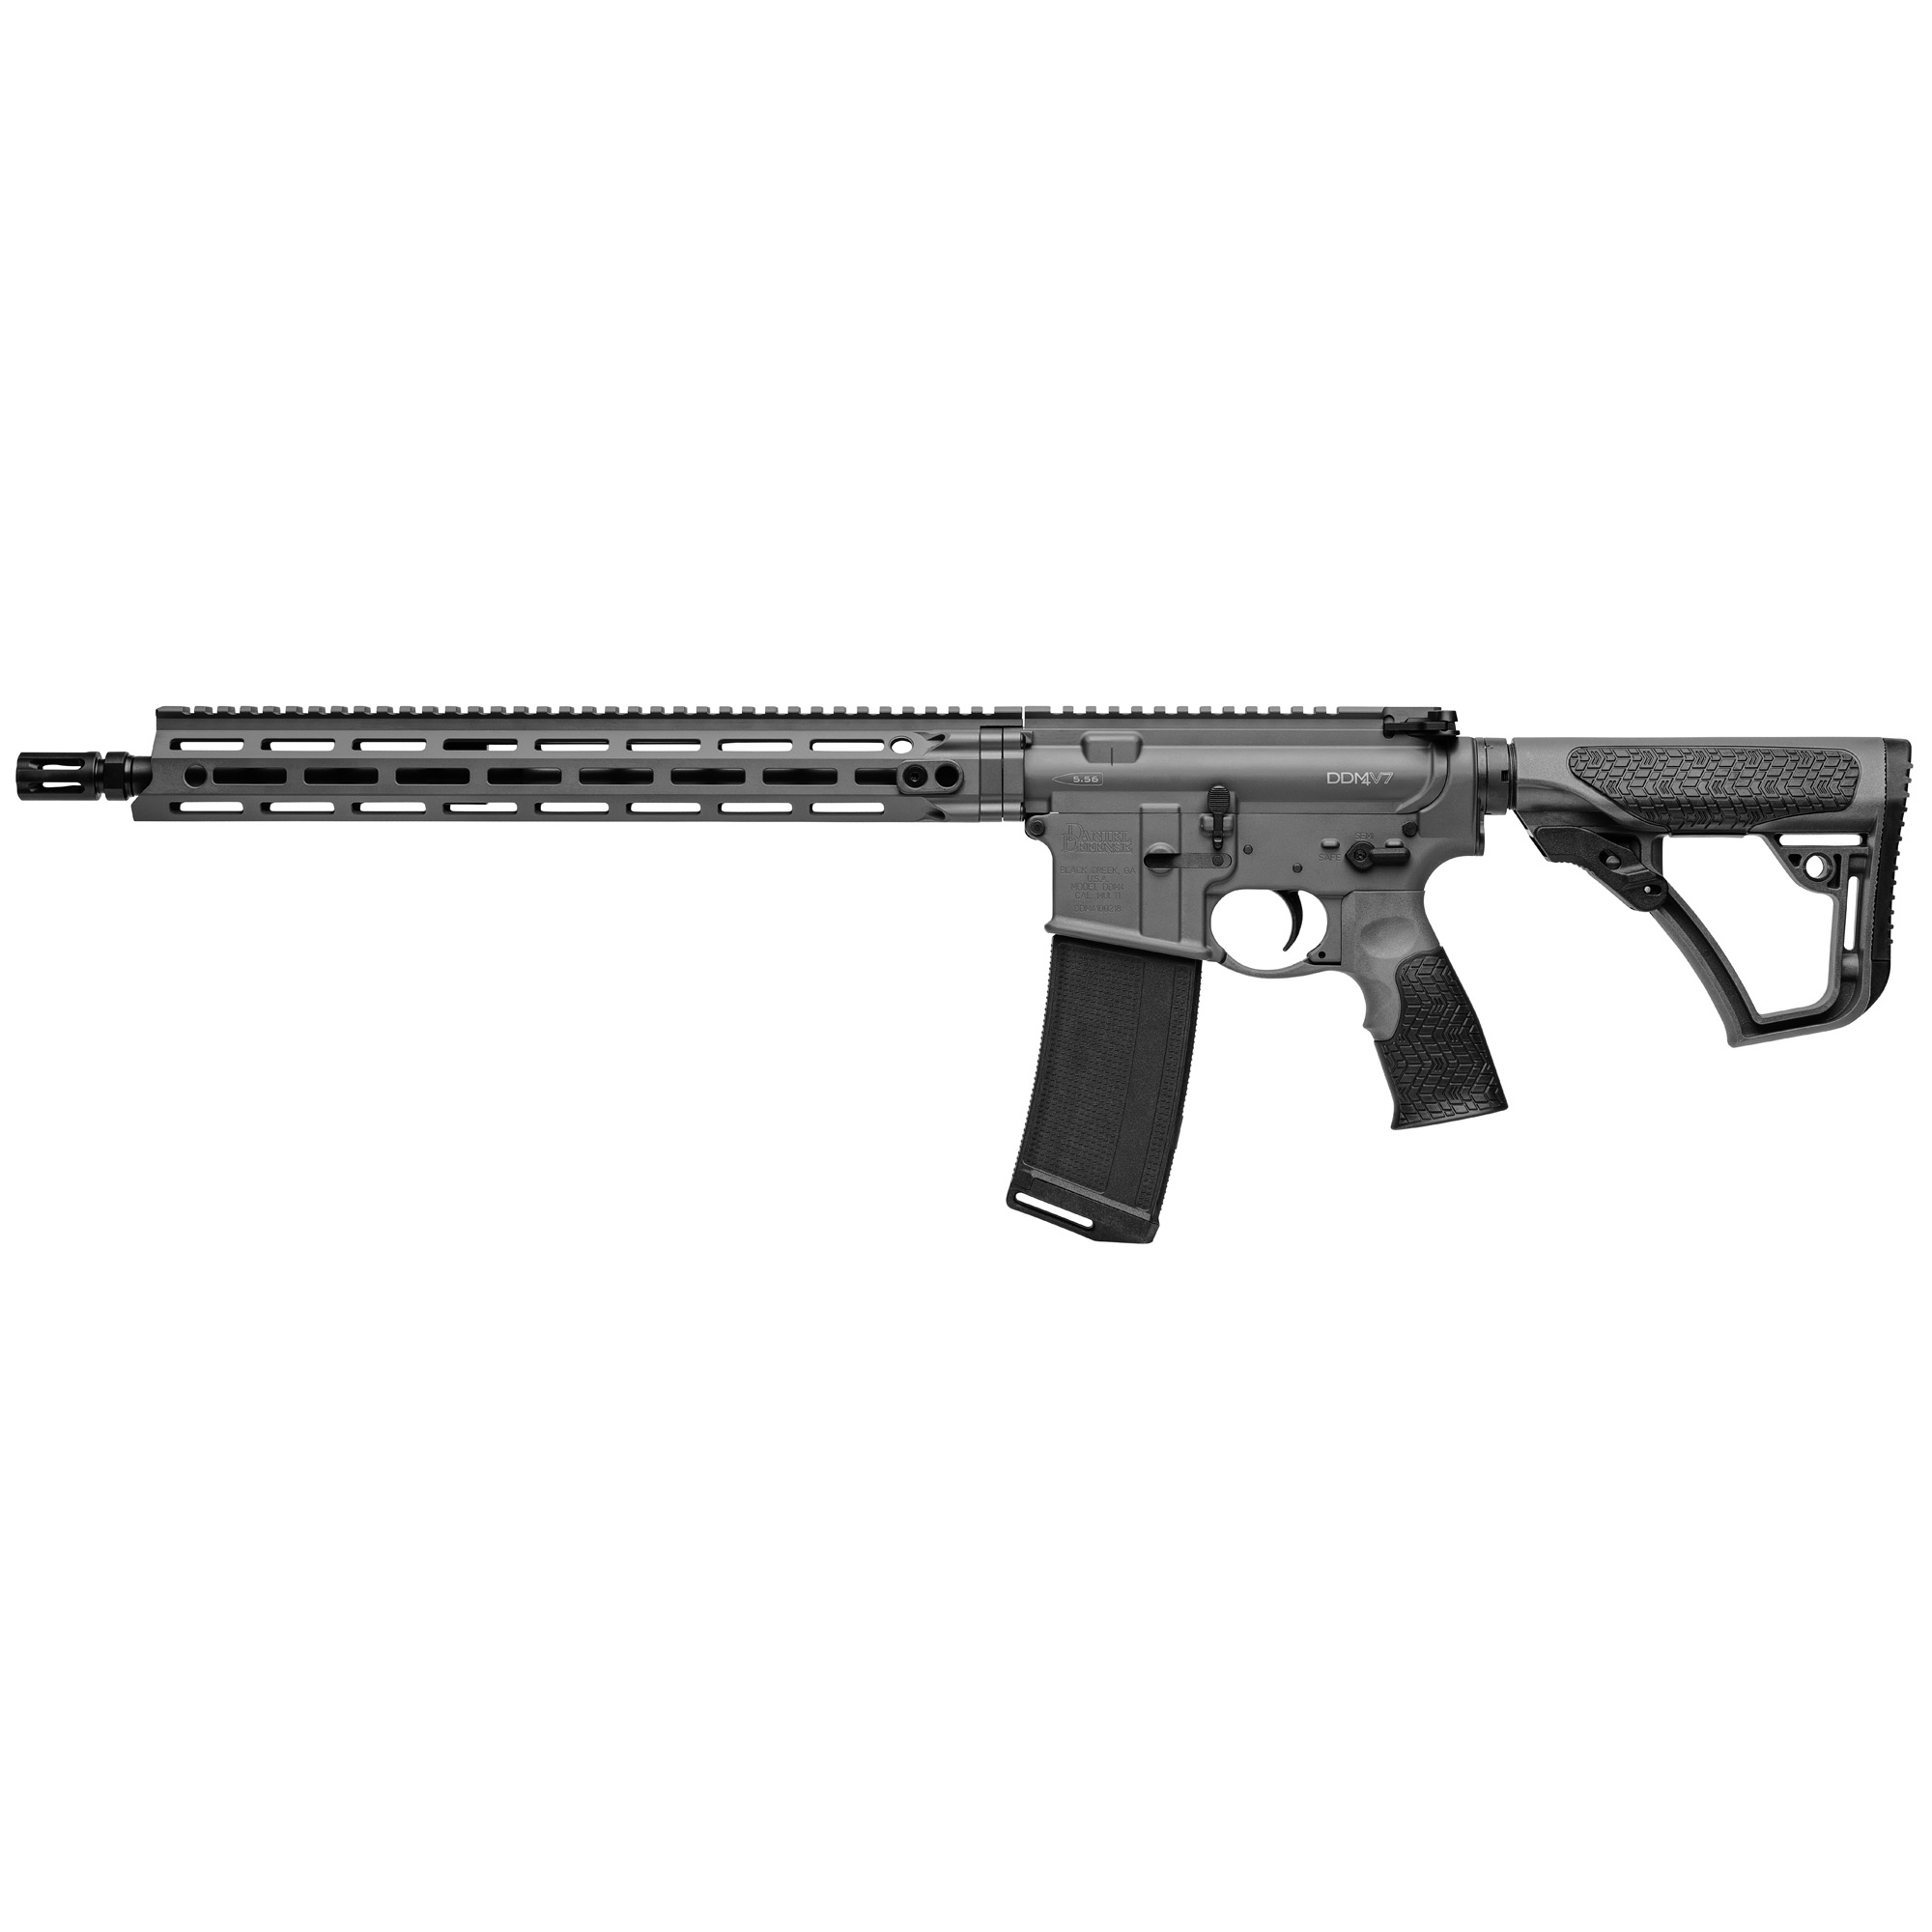 "The Daniel Defense V7 is the first rifle in the DDM4 lineup to feature the M-LOK(R) attachment technology with the Daniel Defense MFR 15.0 rail. Built around a Cold Hammer Forged"" 16"" barrel"" the V7 has a DD improved Flash Suppressor to reduce flash signature. The mid-length gas system provides smooth and reliable cycling under any condition and reduces both perceived recoil and wear on moving parts."